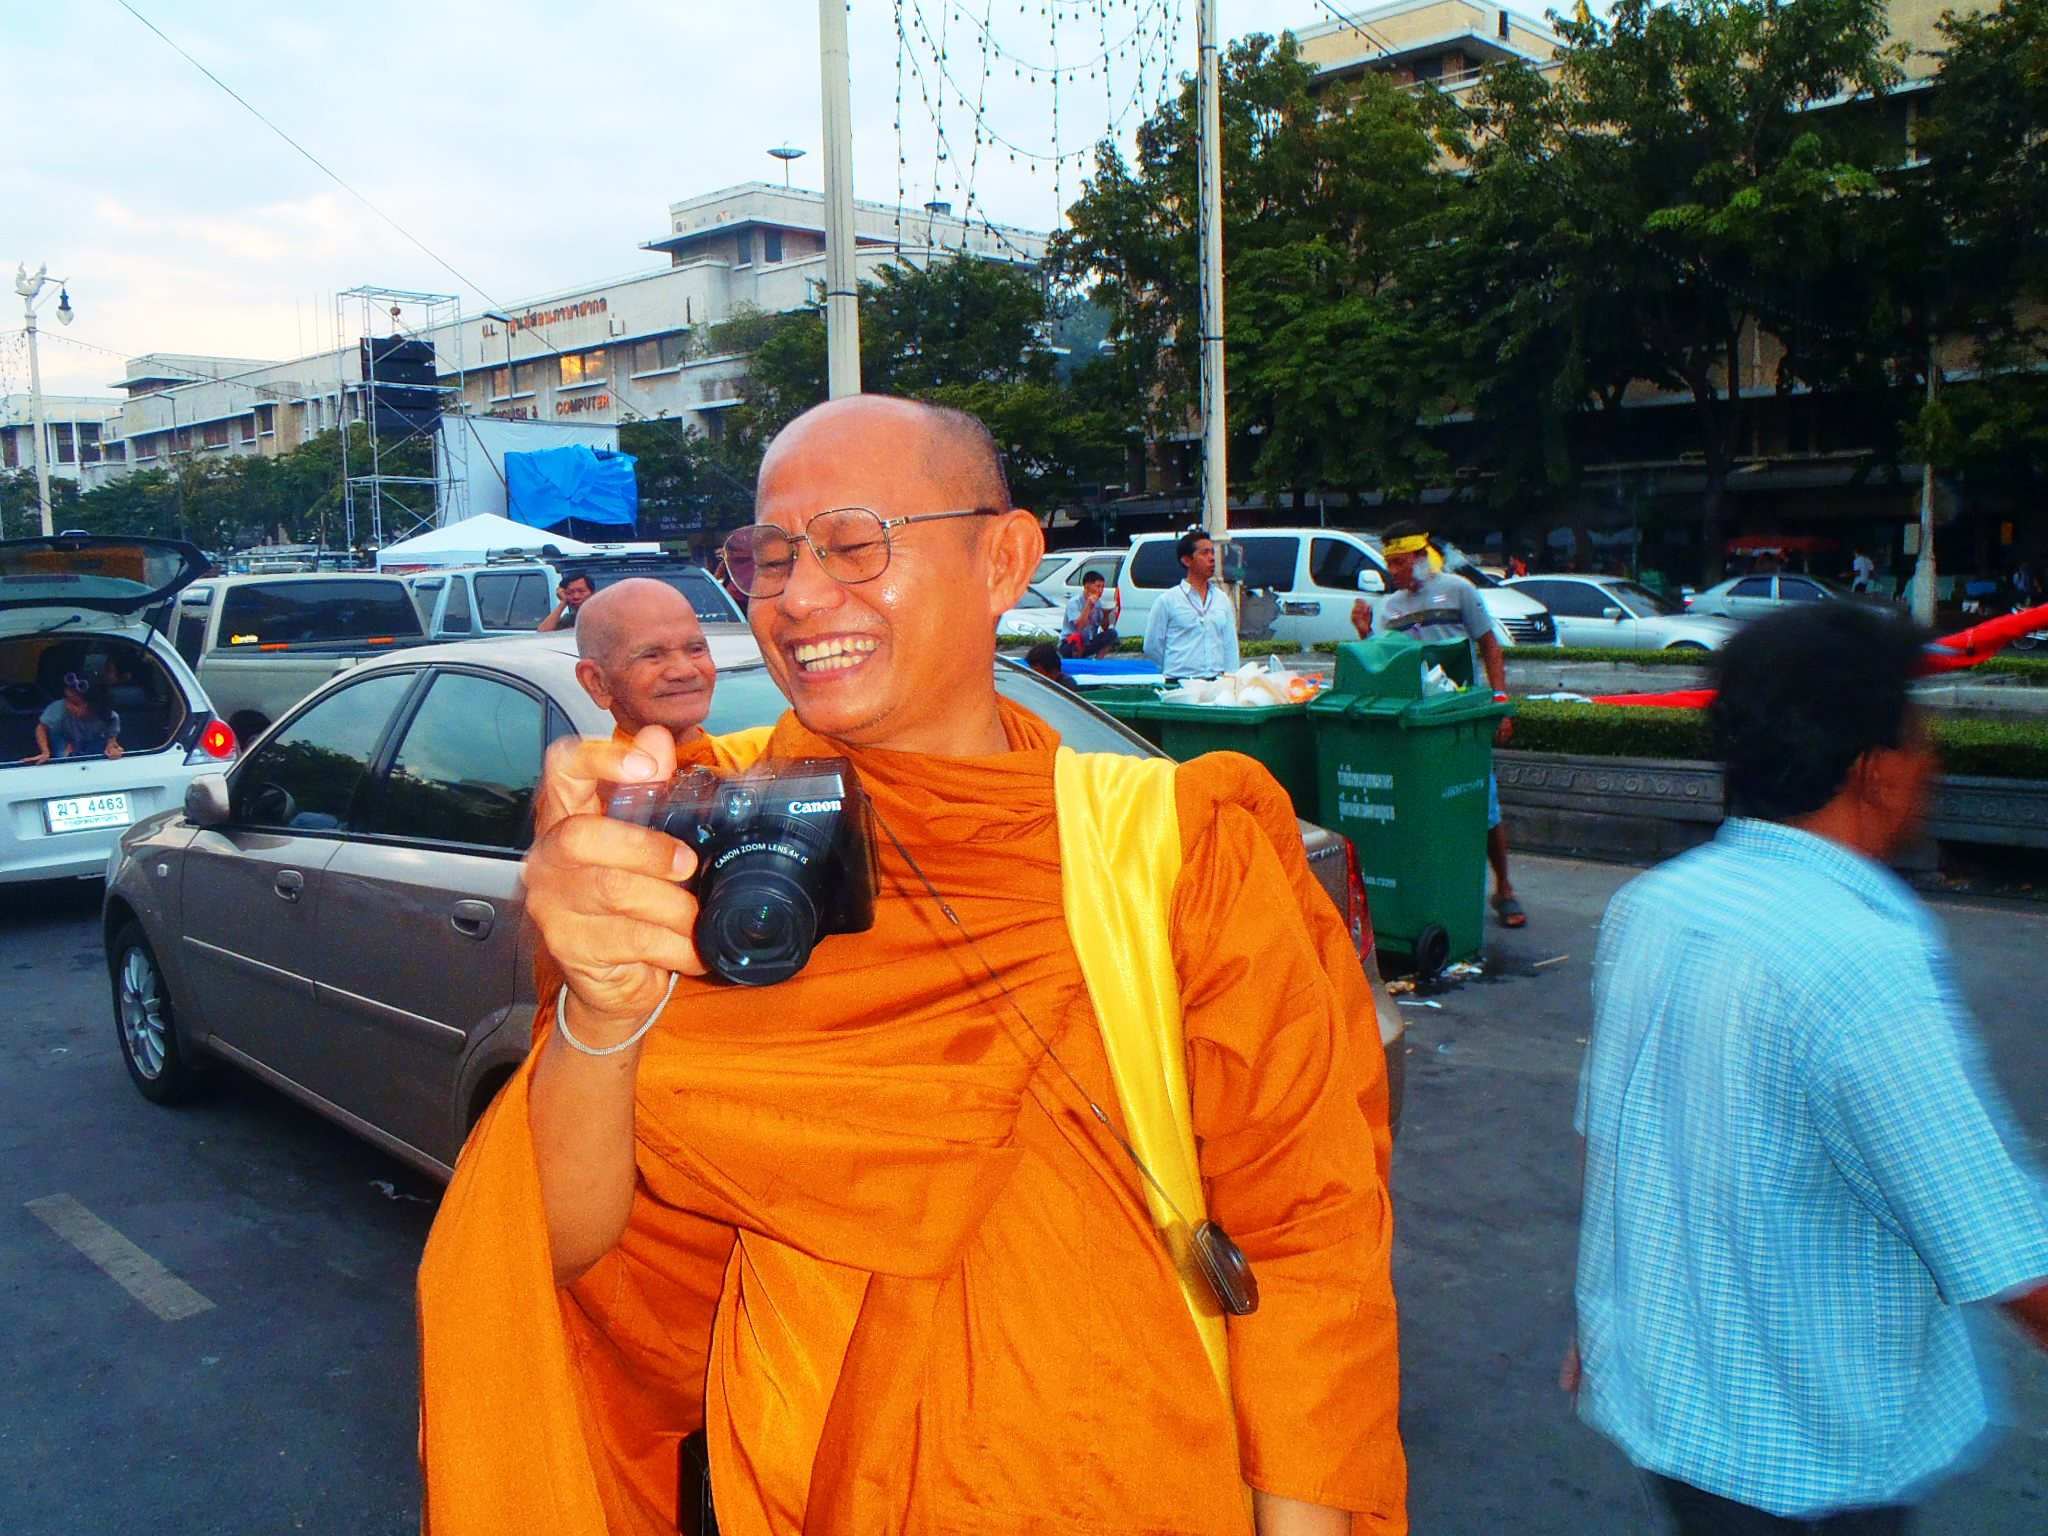 One day in the life of Bangkok as seen by a cyclist on the Bamboo Road Bicycle Expedition.